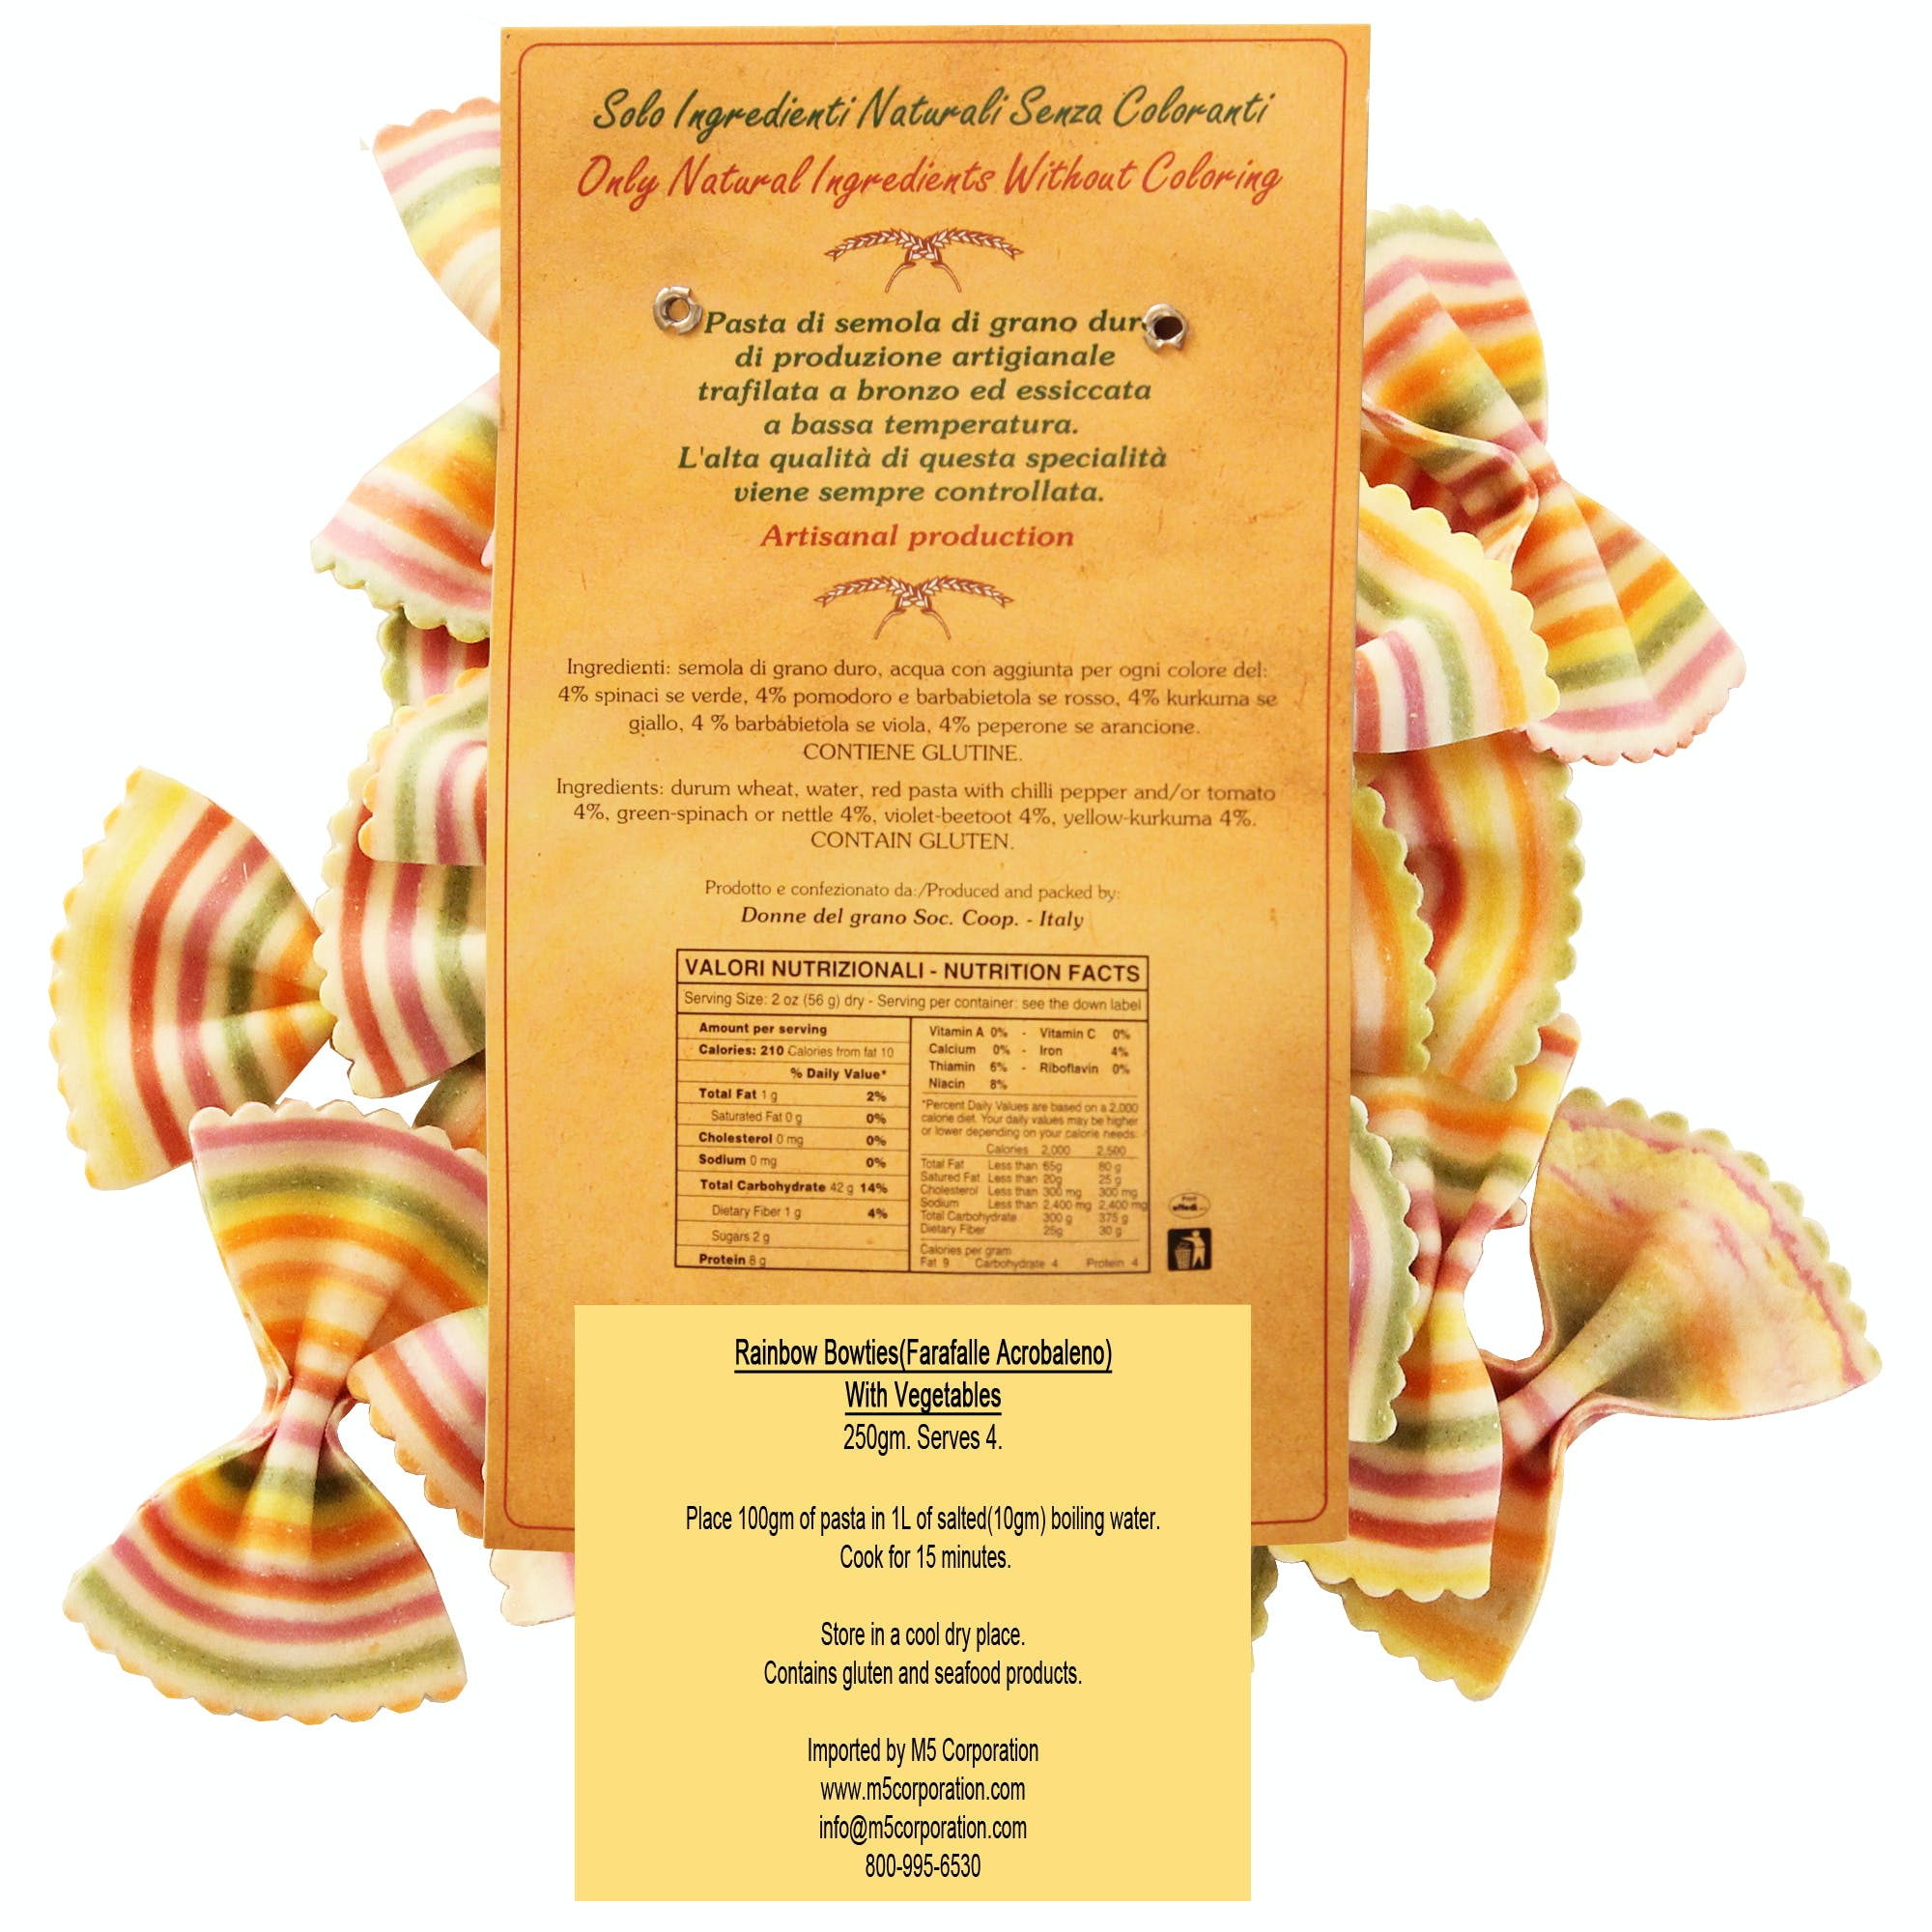 """Rainbow Bowties """"Faralle Aracobaleno"""" Colored Pasta - sold by M5 Corporation"""